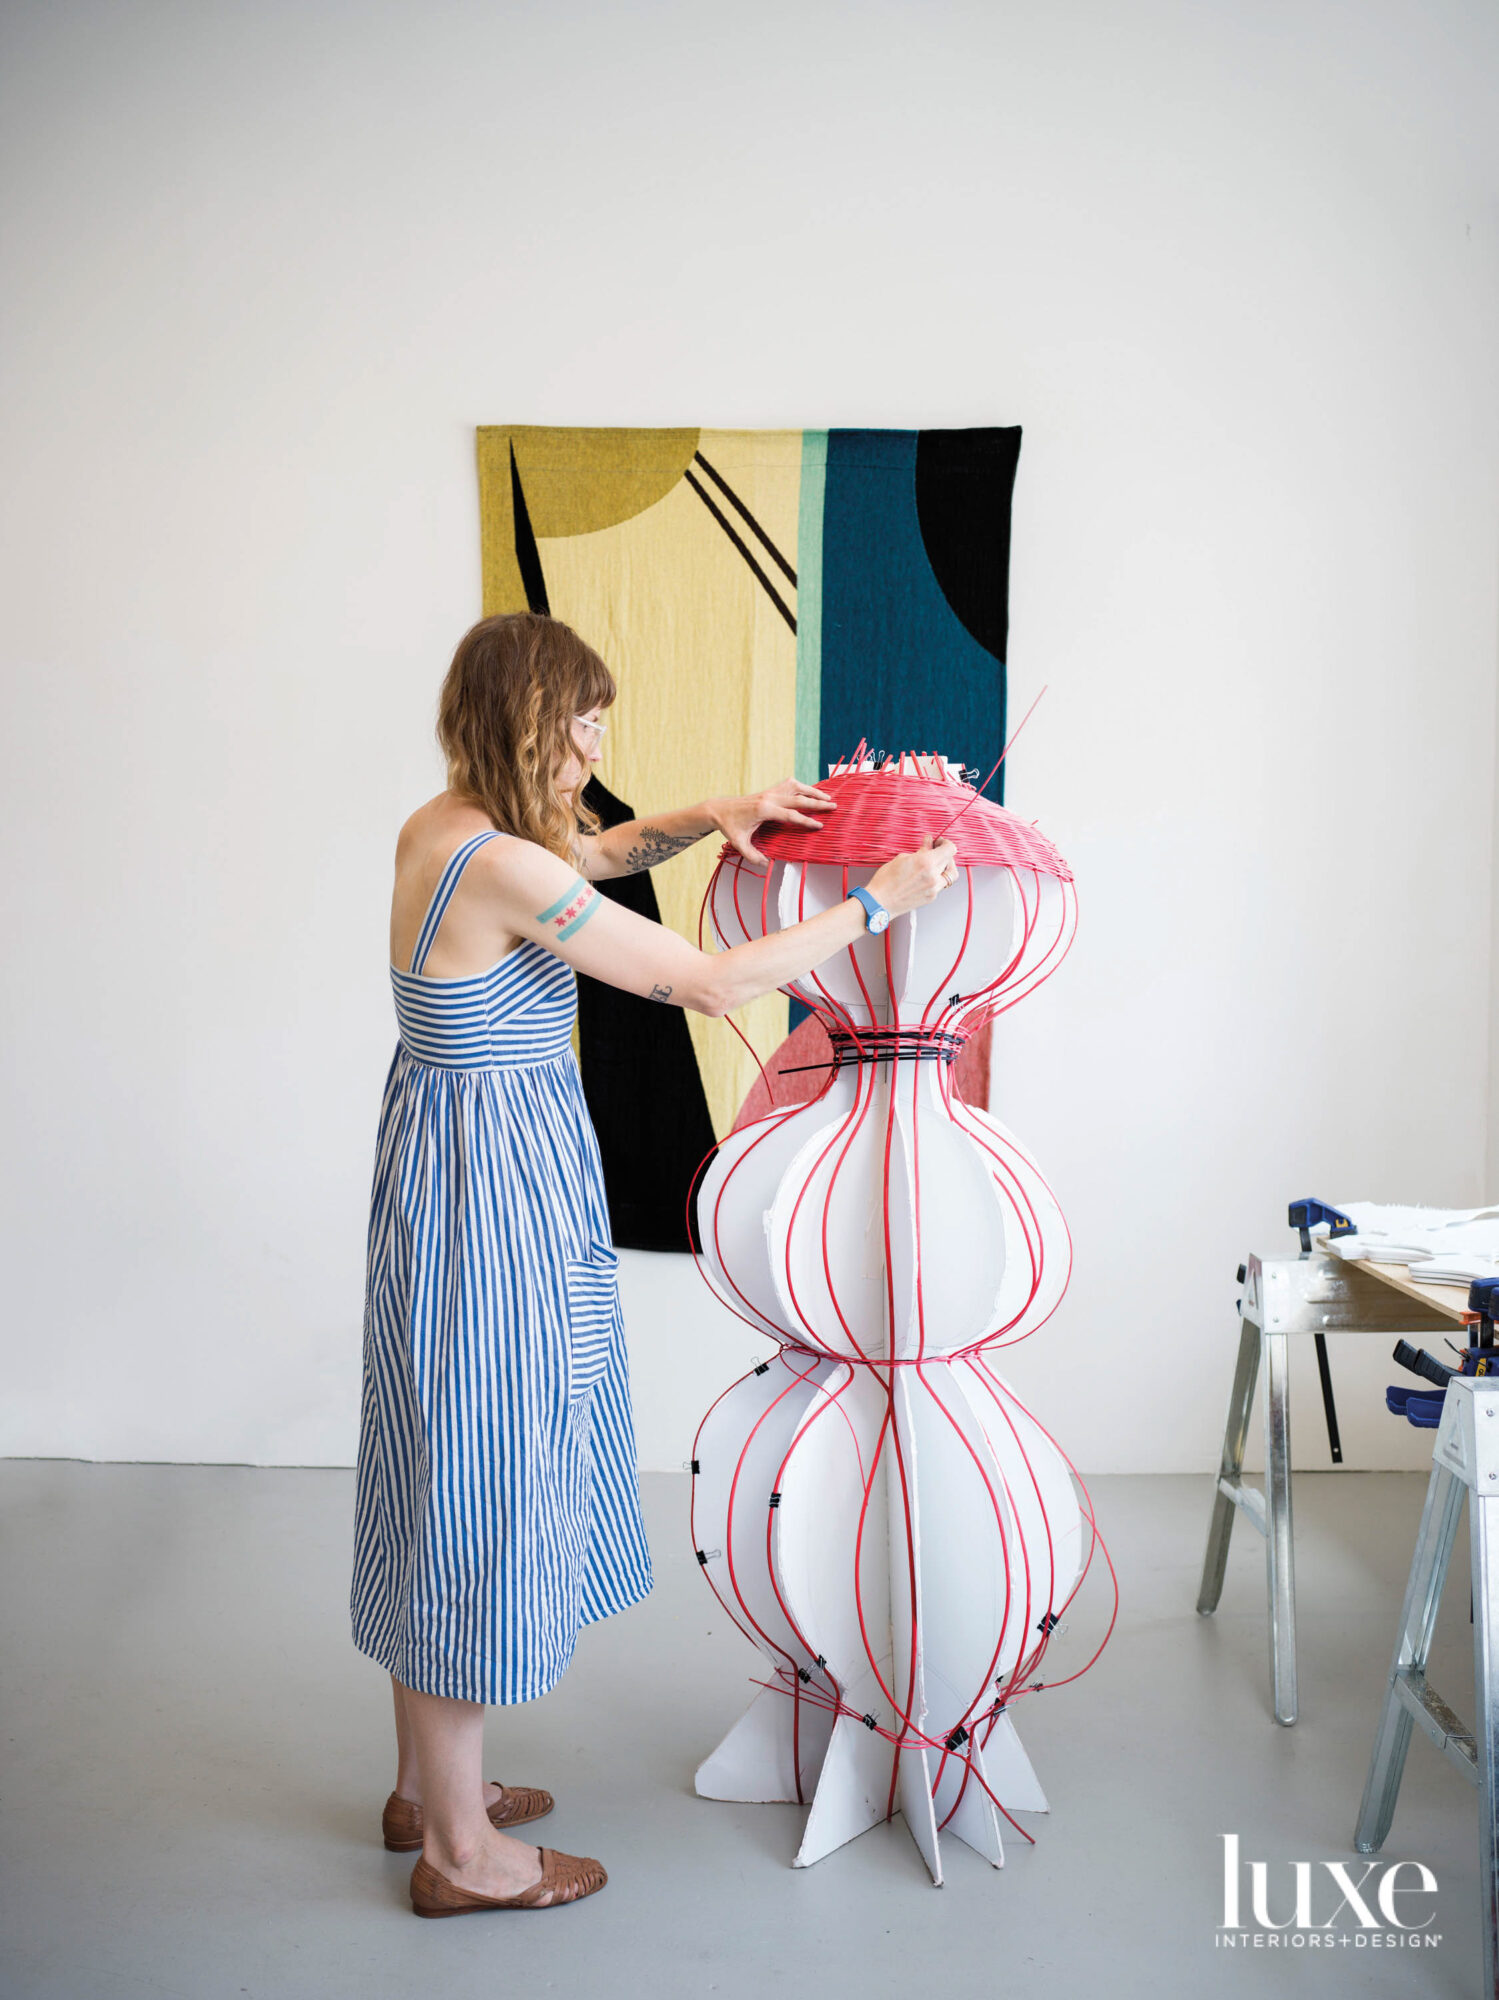 The artist weaving a large pink basket. A textile hangs on the wall.